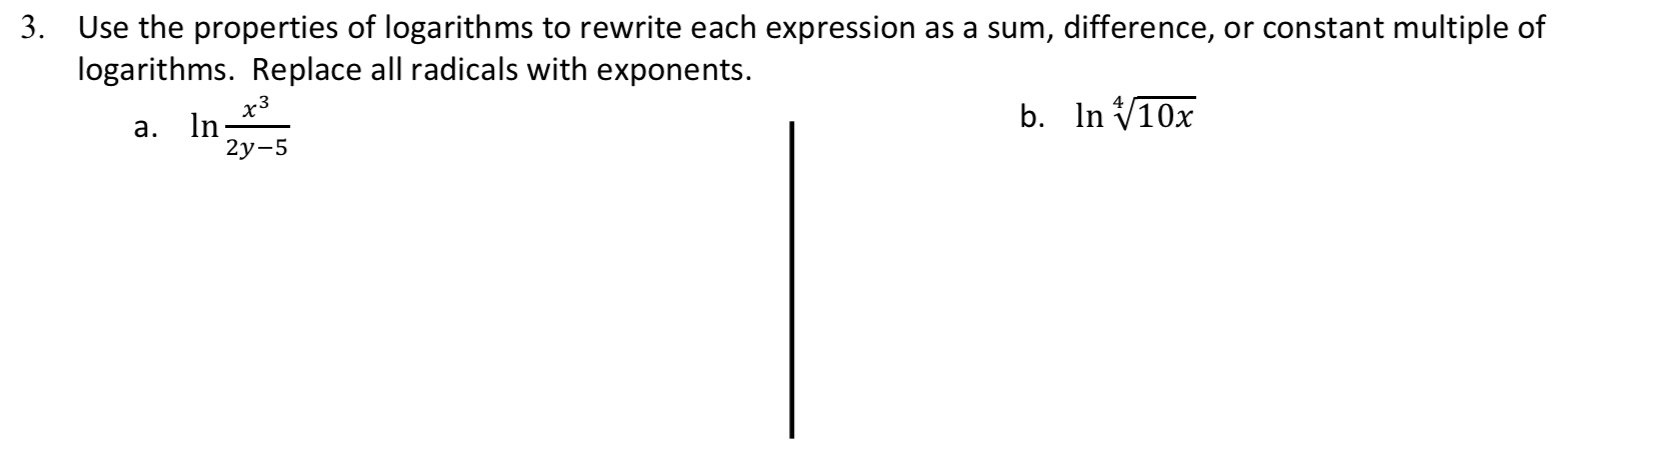 3. Use the properties of logarithms to rewrite each expression as a sum, difference, or constant multiple of logarithms. Replace all radicals with exponents. b. n V10x а. In 2у-5